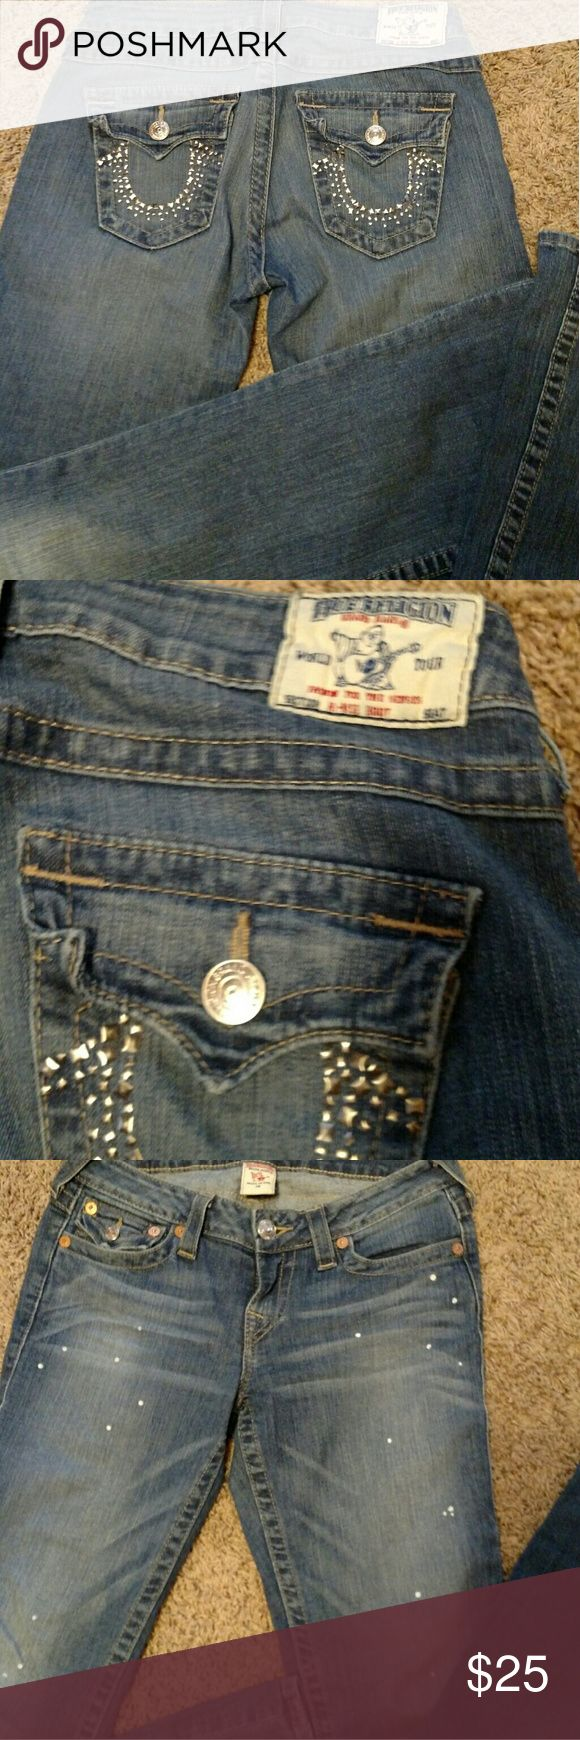 Women TRUE RELIGION distressed jeans Women distressed  light Denim True Religion jeans. Size 28/33. The white spots in front are the style of the jeans. Doesn't say if boot cut , regular etc in guc. Jeans